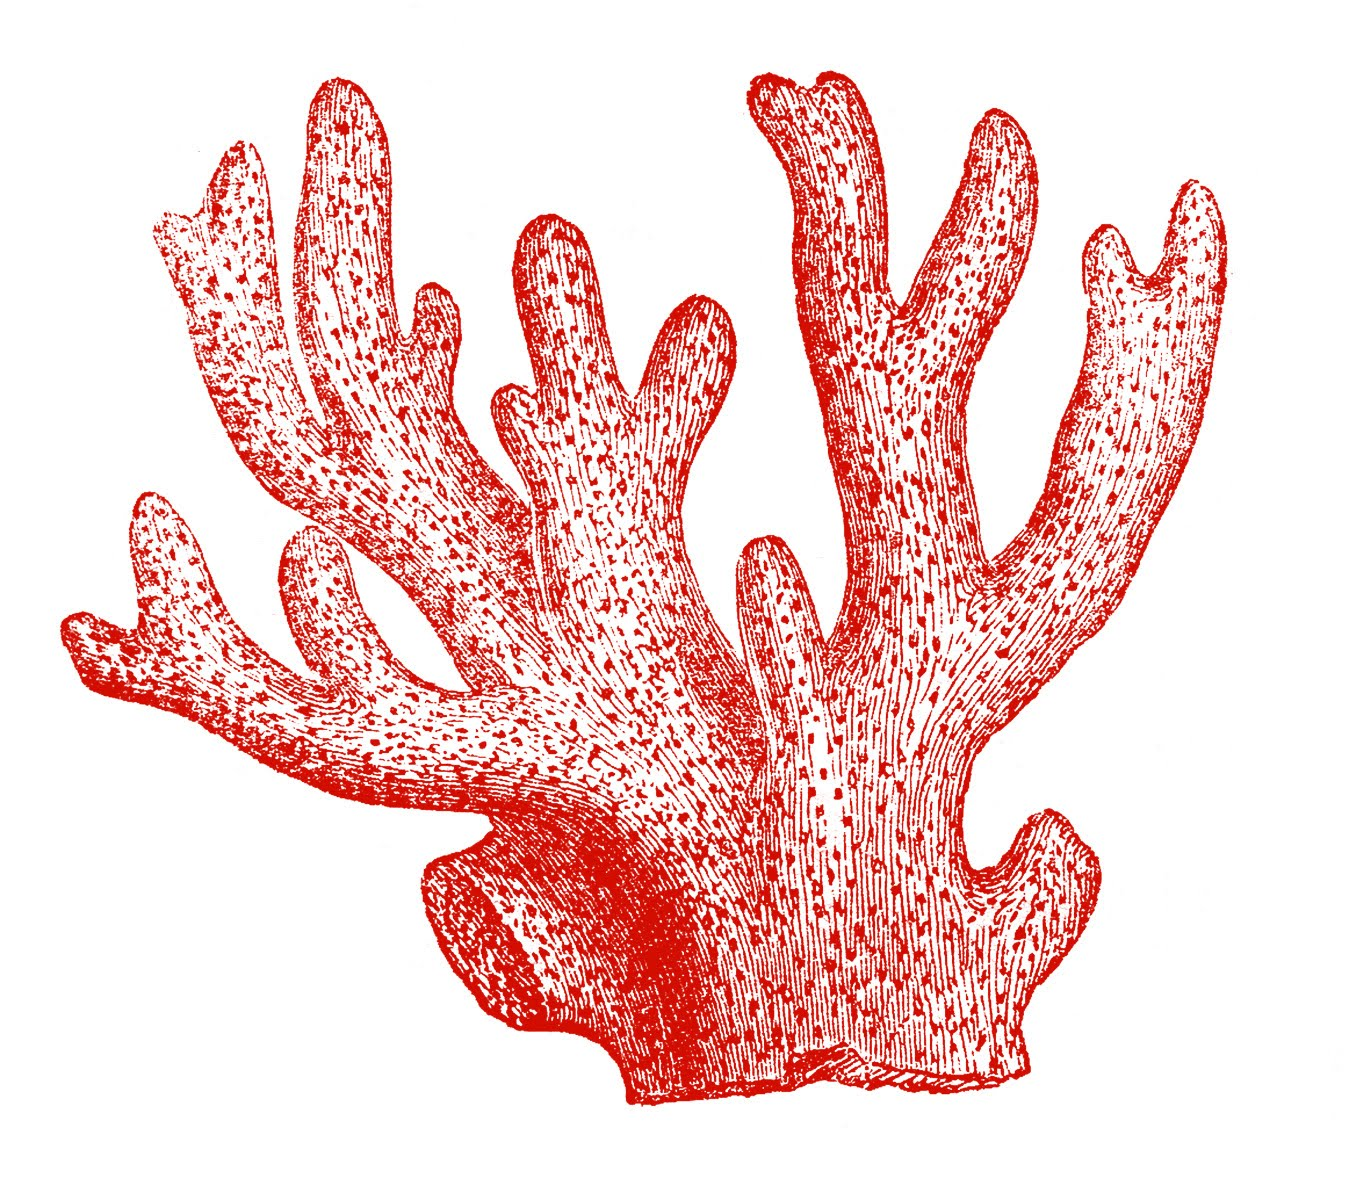 Coral Clipart Free Clip Art Images-Coral Clipart Free Clip Art Images-10